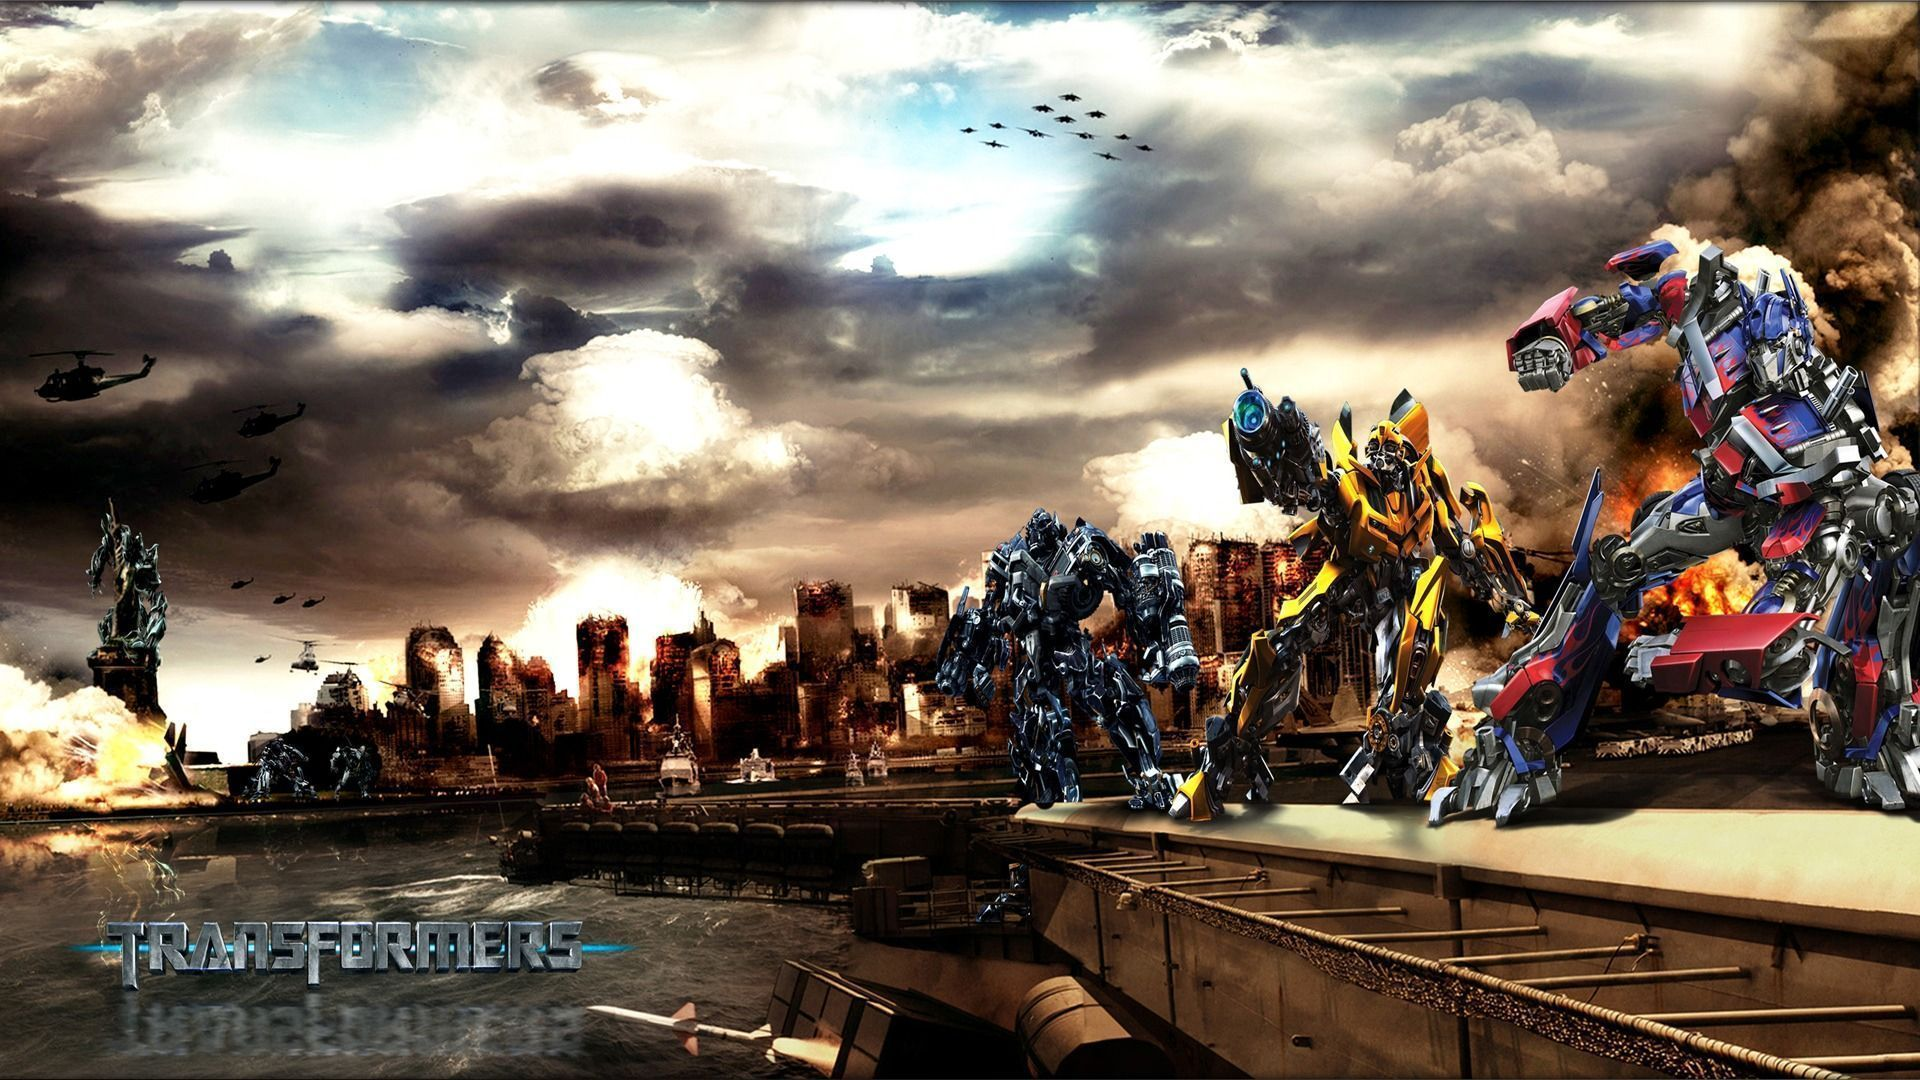 Transformers wallpapers best wallpapers 19201080 transformers transformers wallpapers best wallpapers 19201080 transformers wallpaper 42 wallpapers adorable wallpapers amipublicfo Choice Image